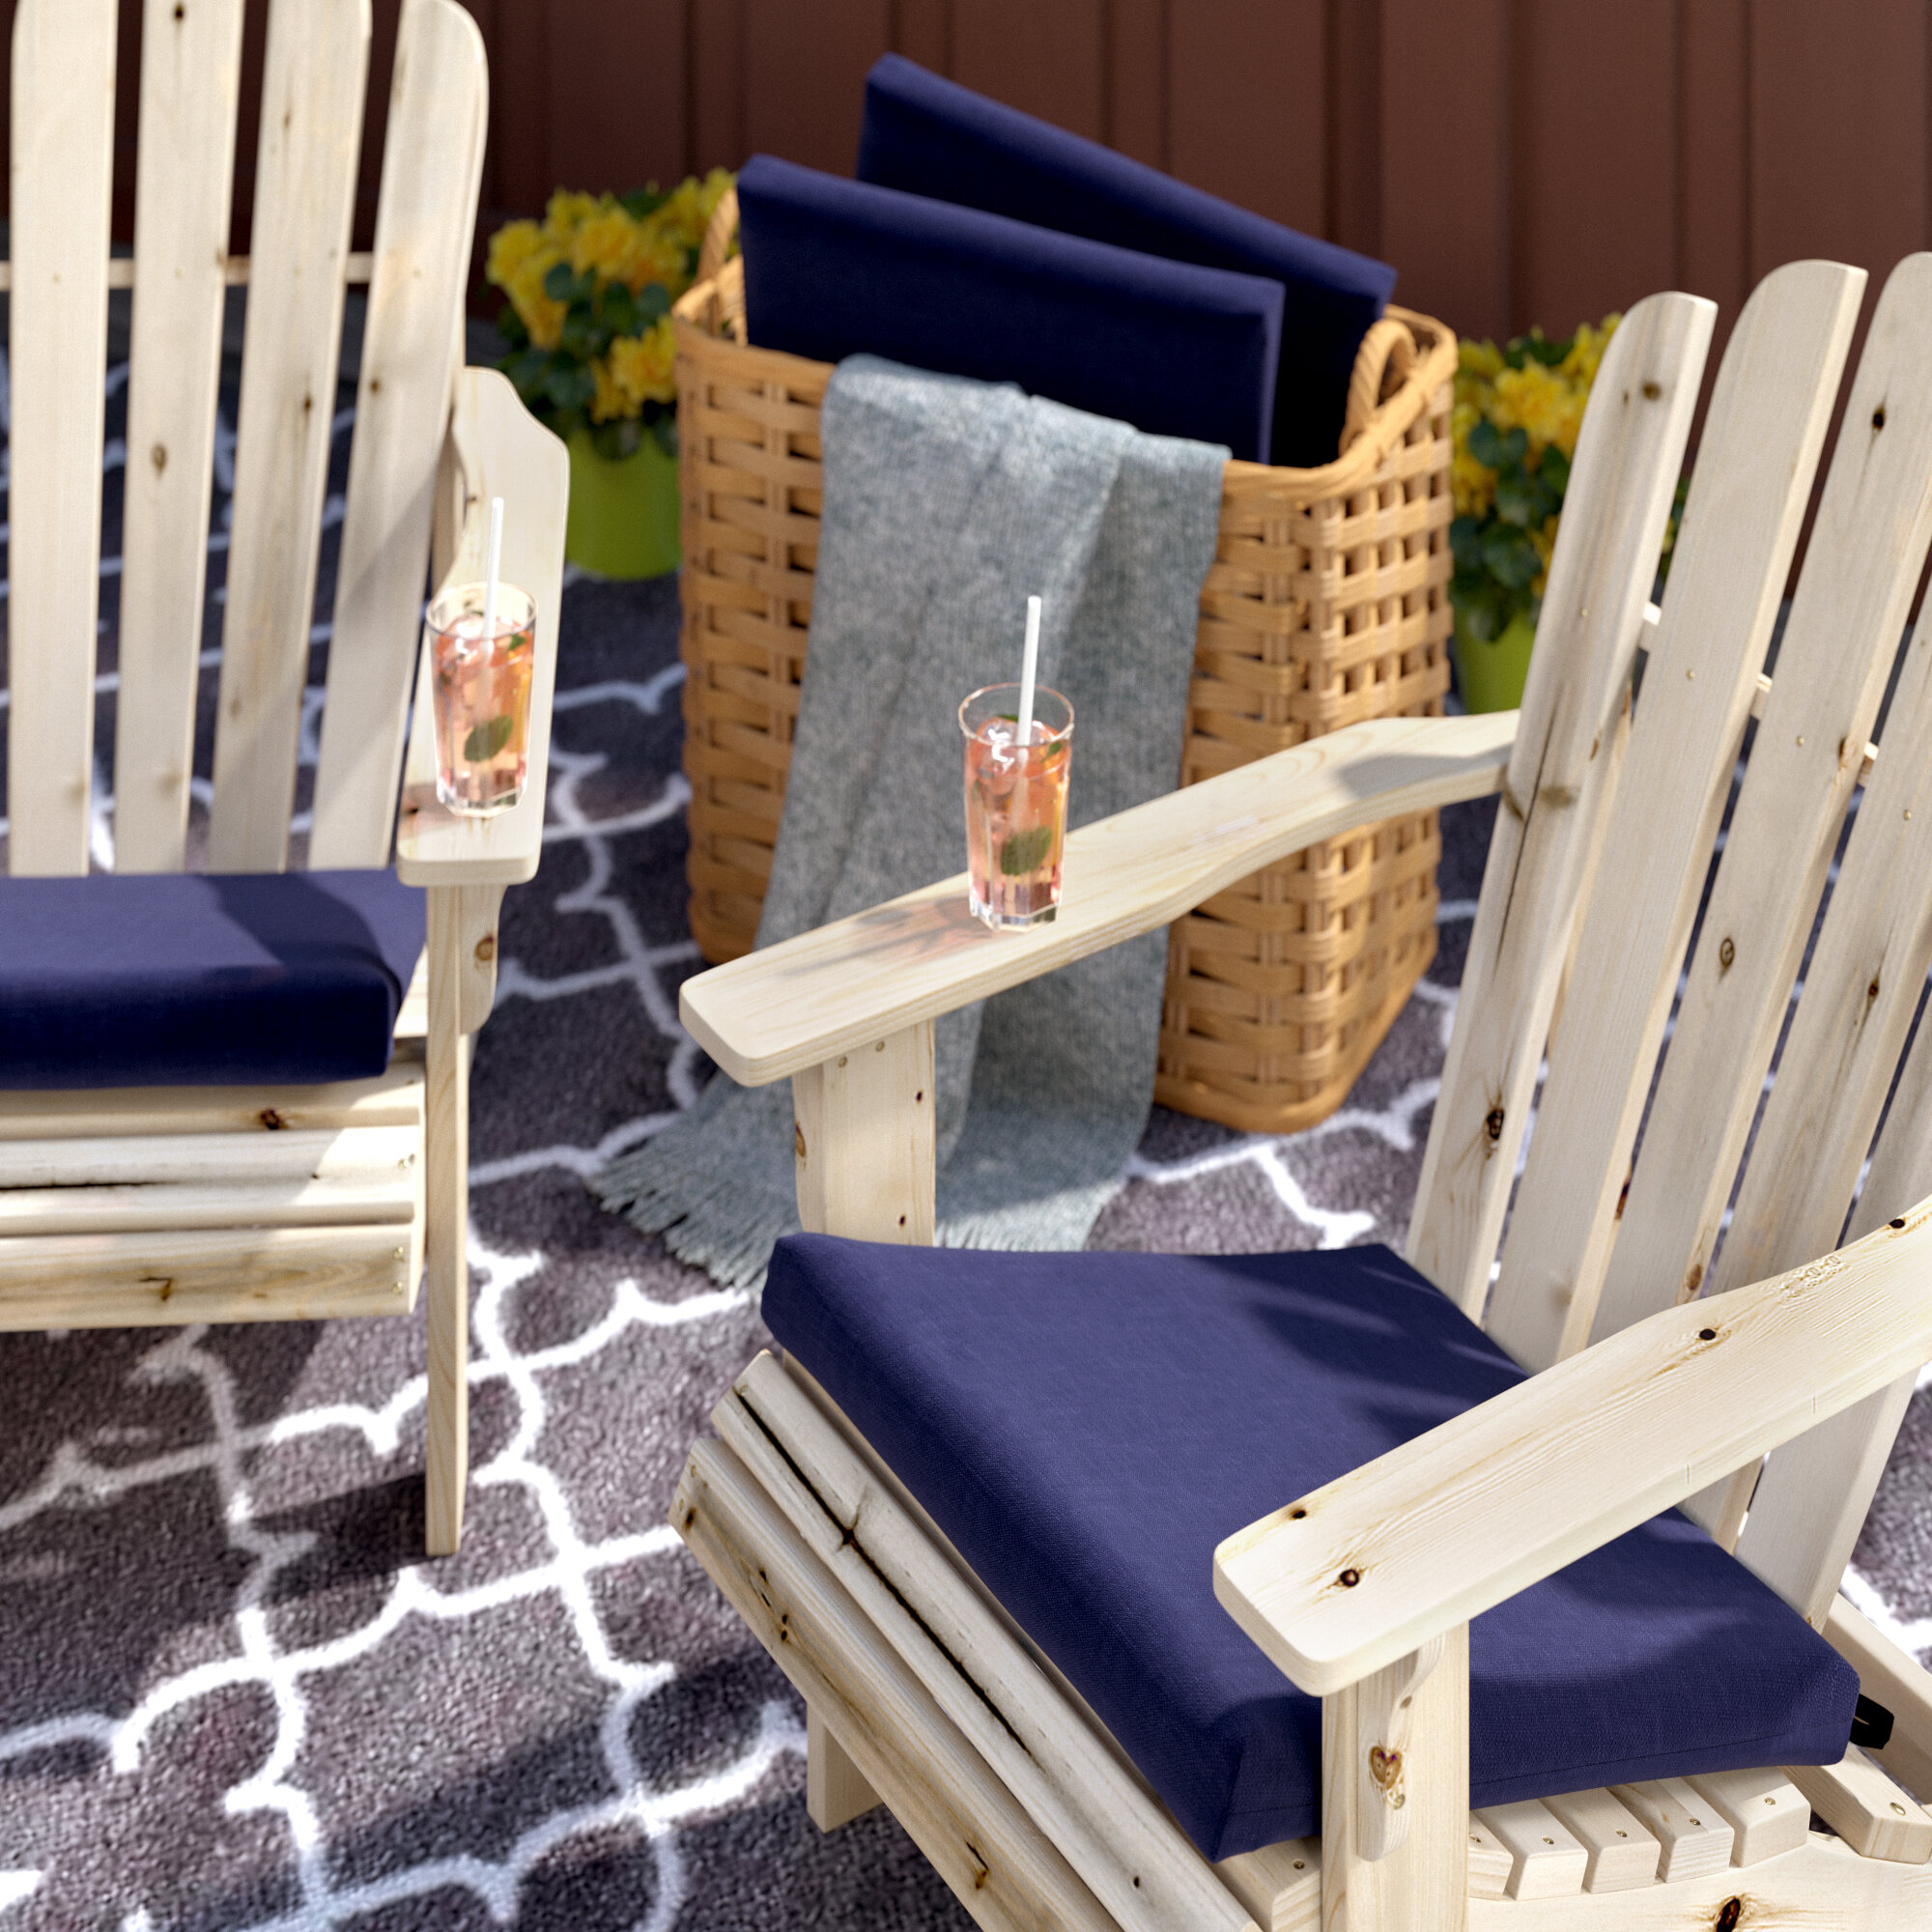 Coussin Pour Fauteuil Adirondack indoor/outdoor adirondack chair cushion